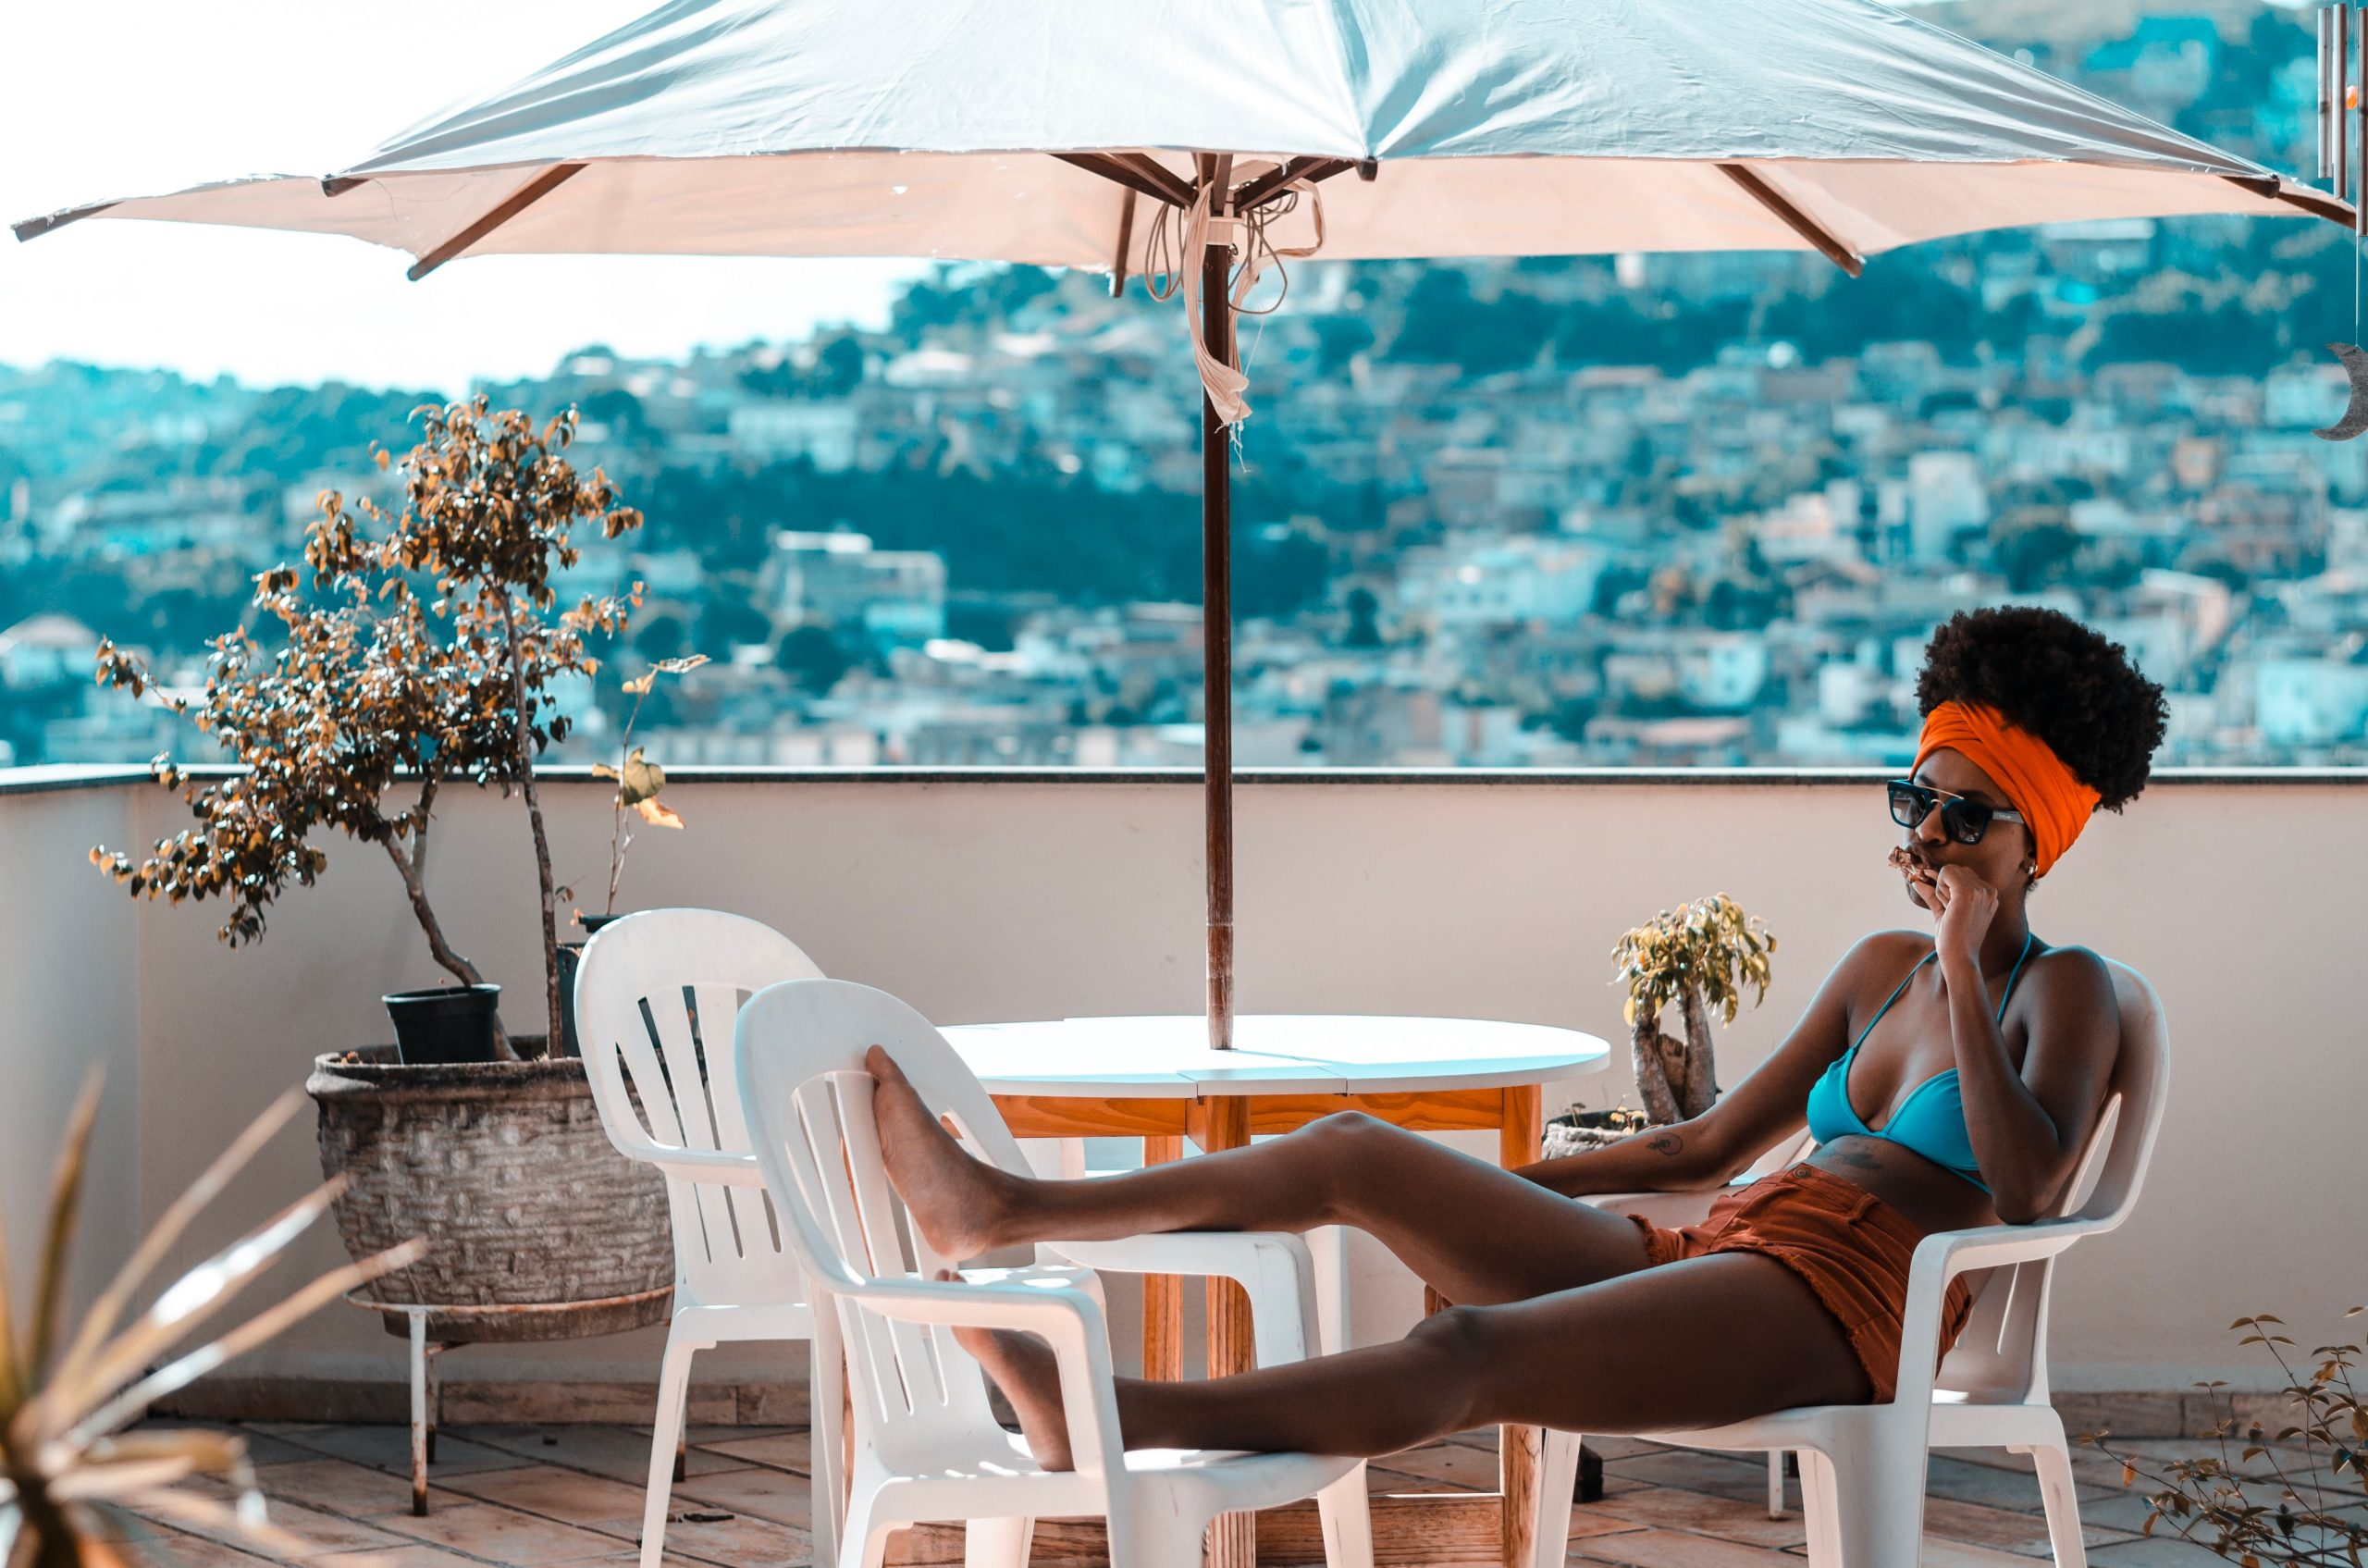 How to Take a Luxury Vacation on a Budget